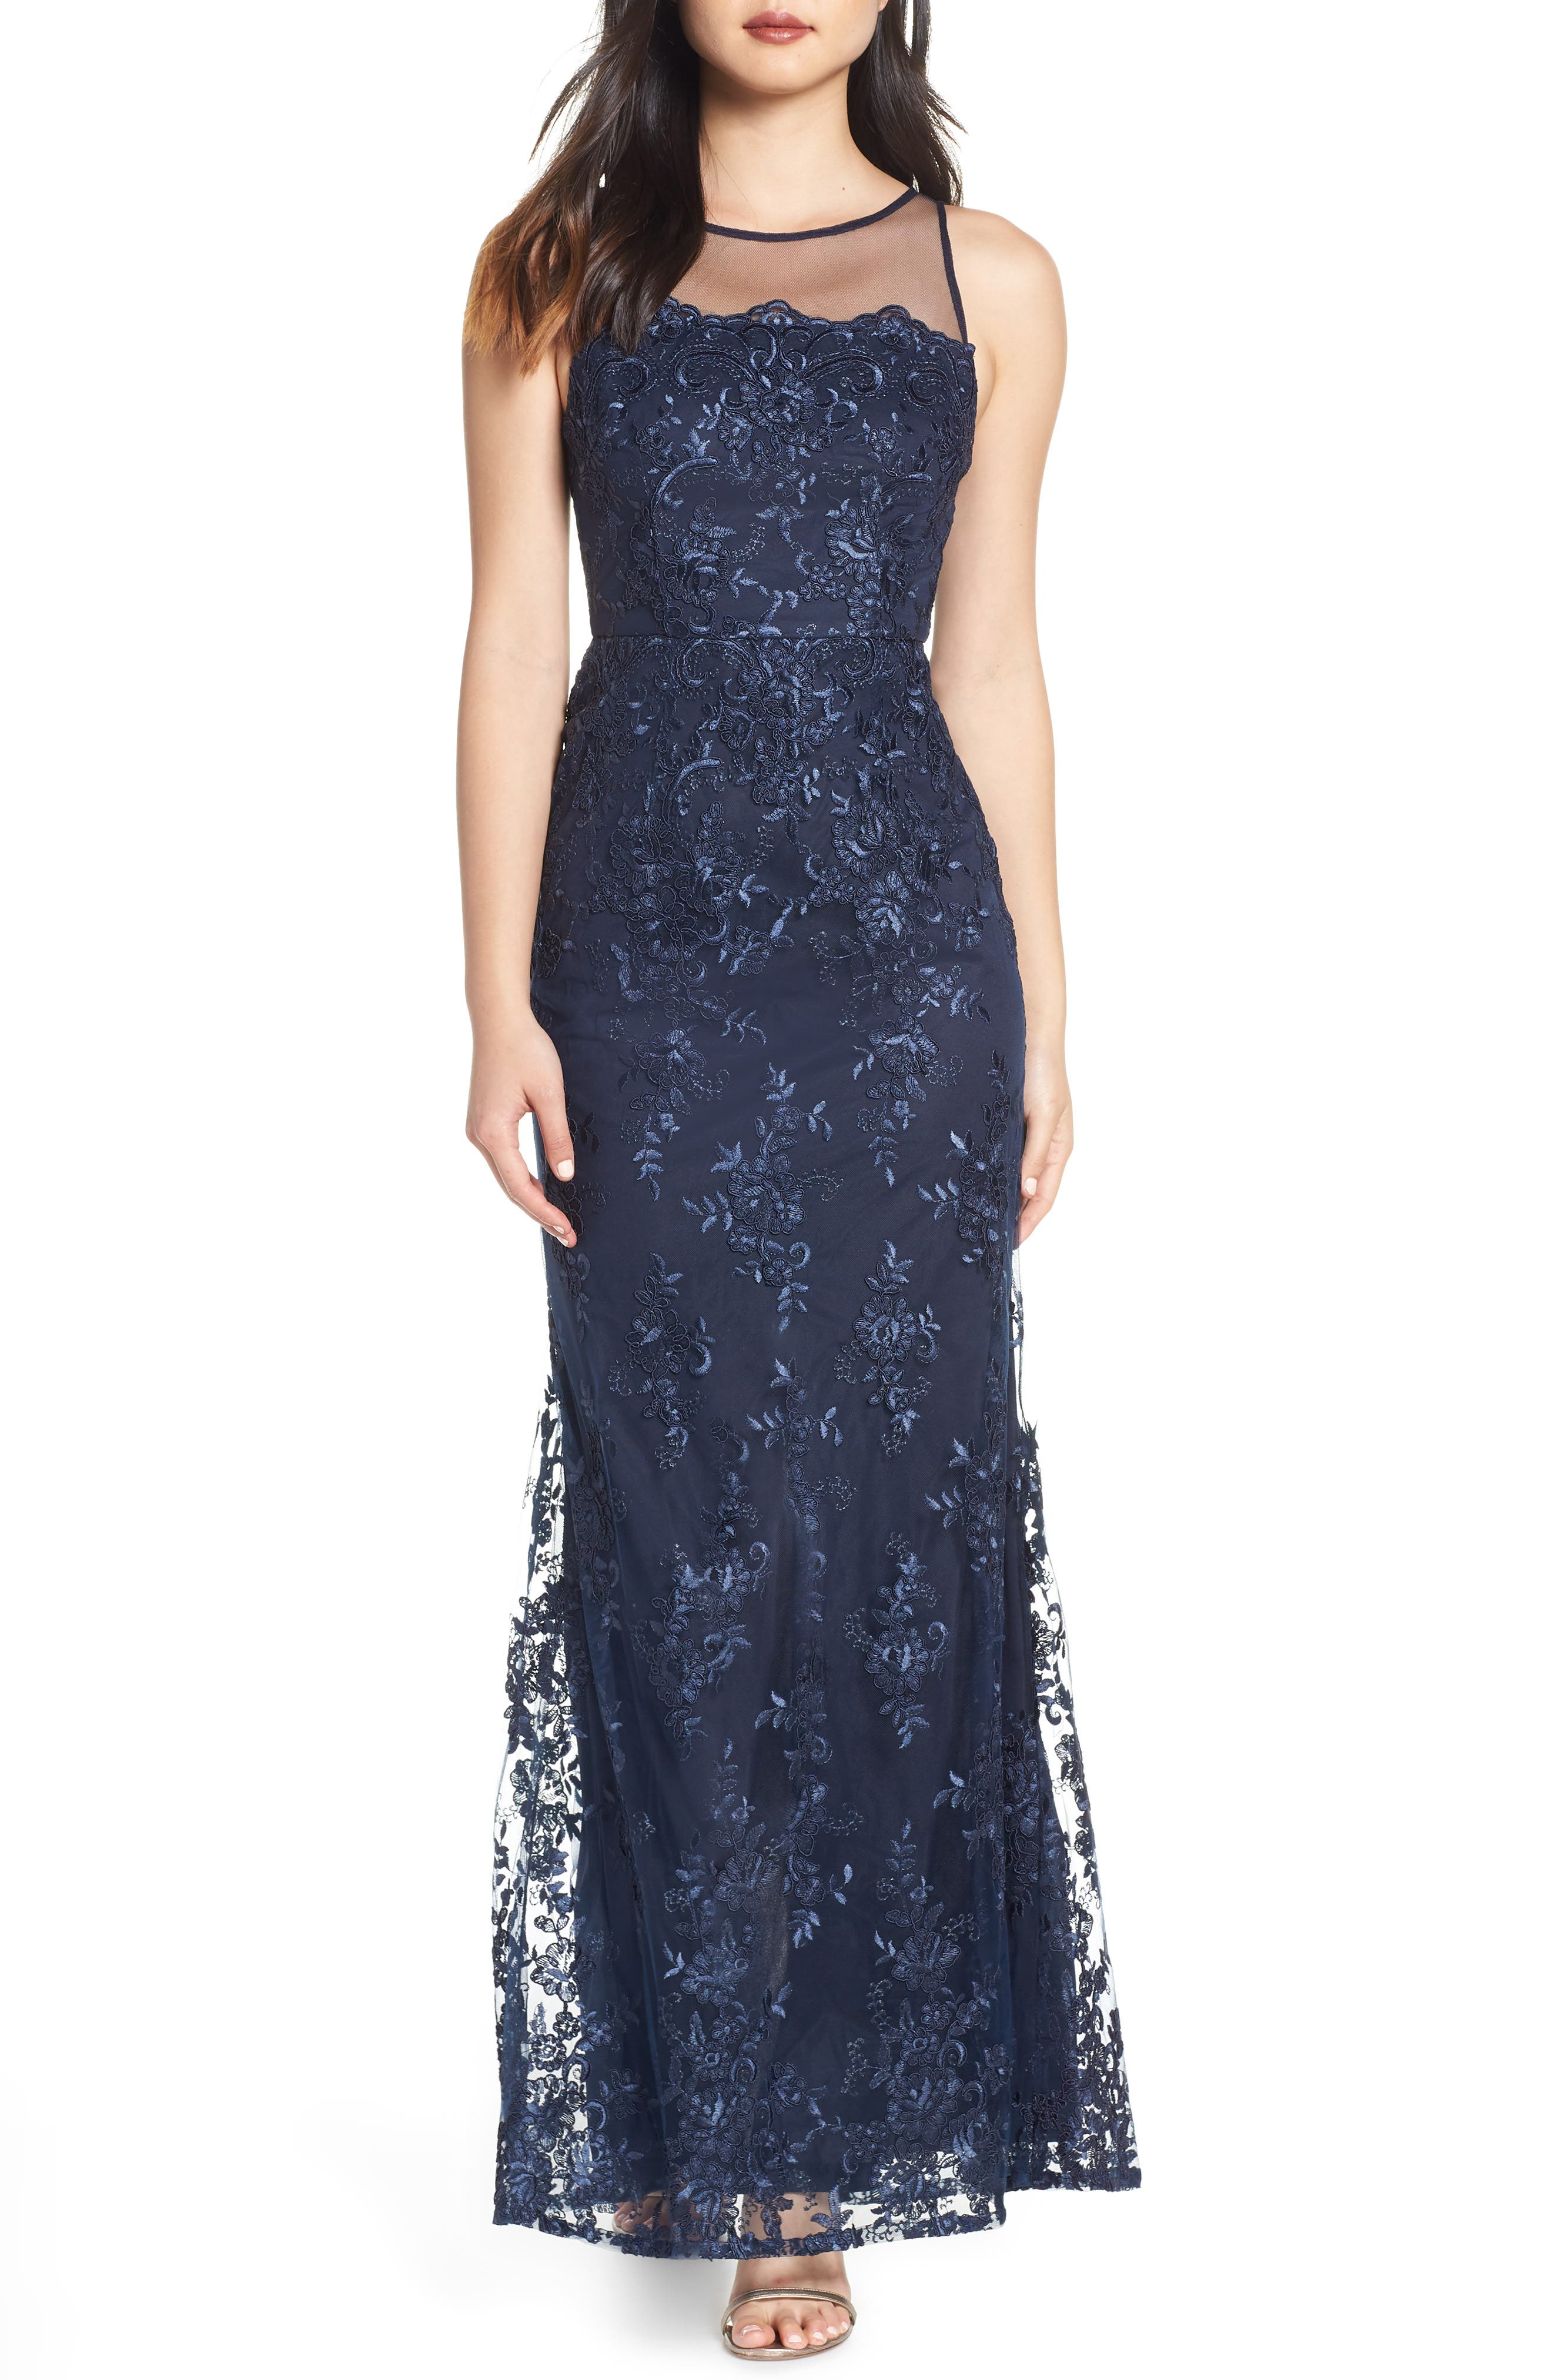 ADRIANNA PAPELL,                             Corded Lace Evening Dress,                             Main thumbnail 1, color,                             MIDNIGHT